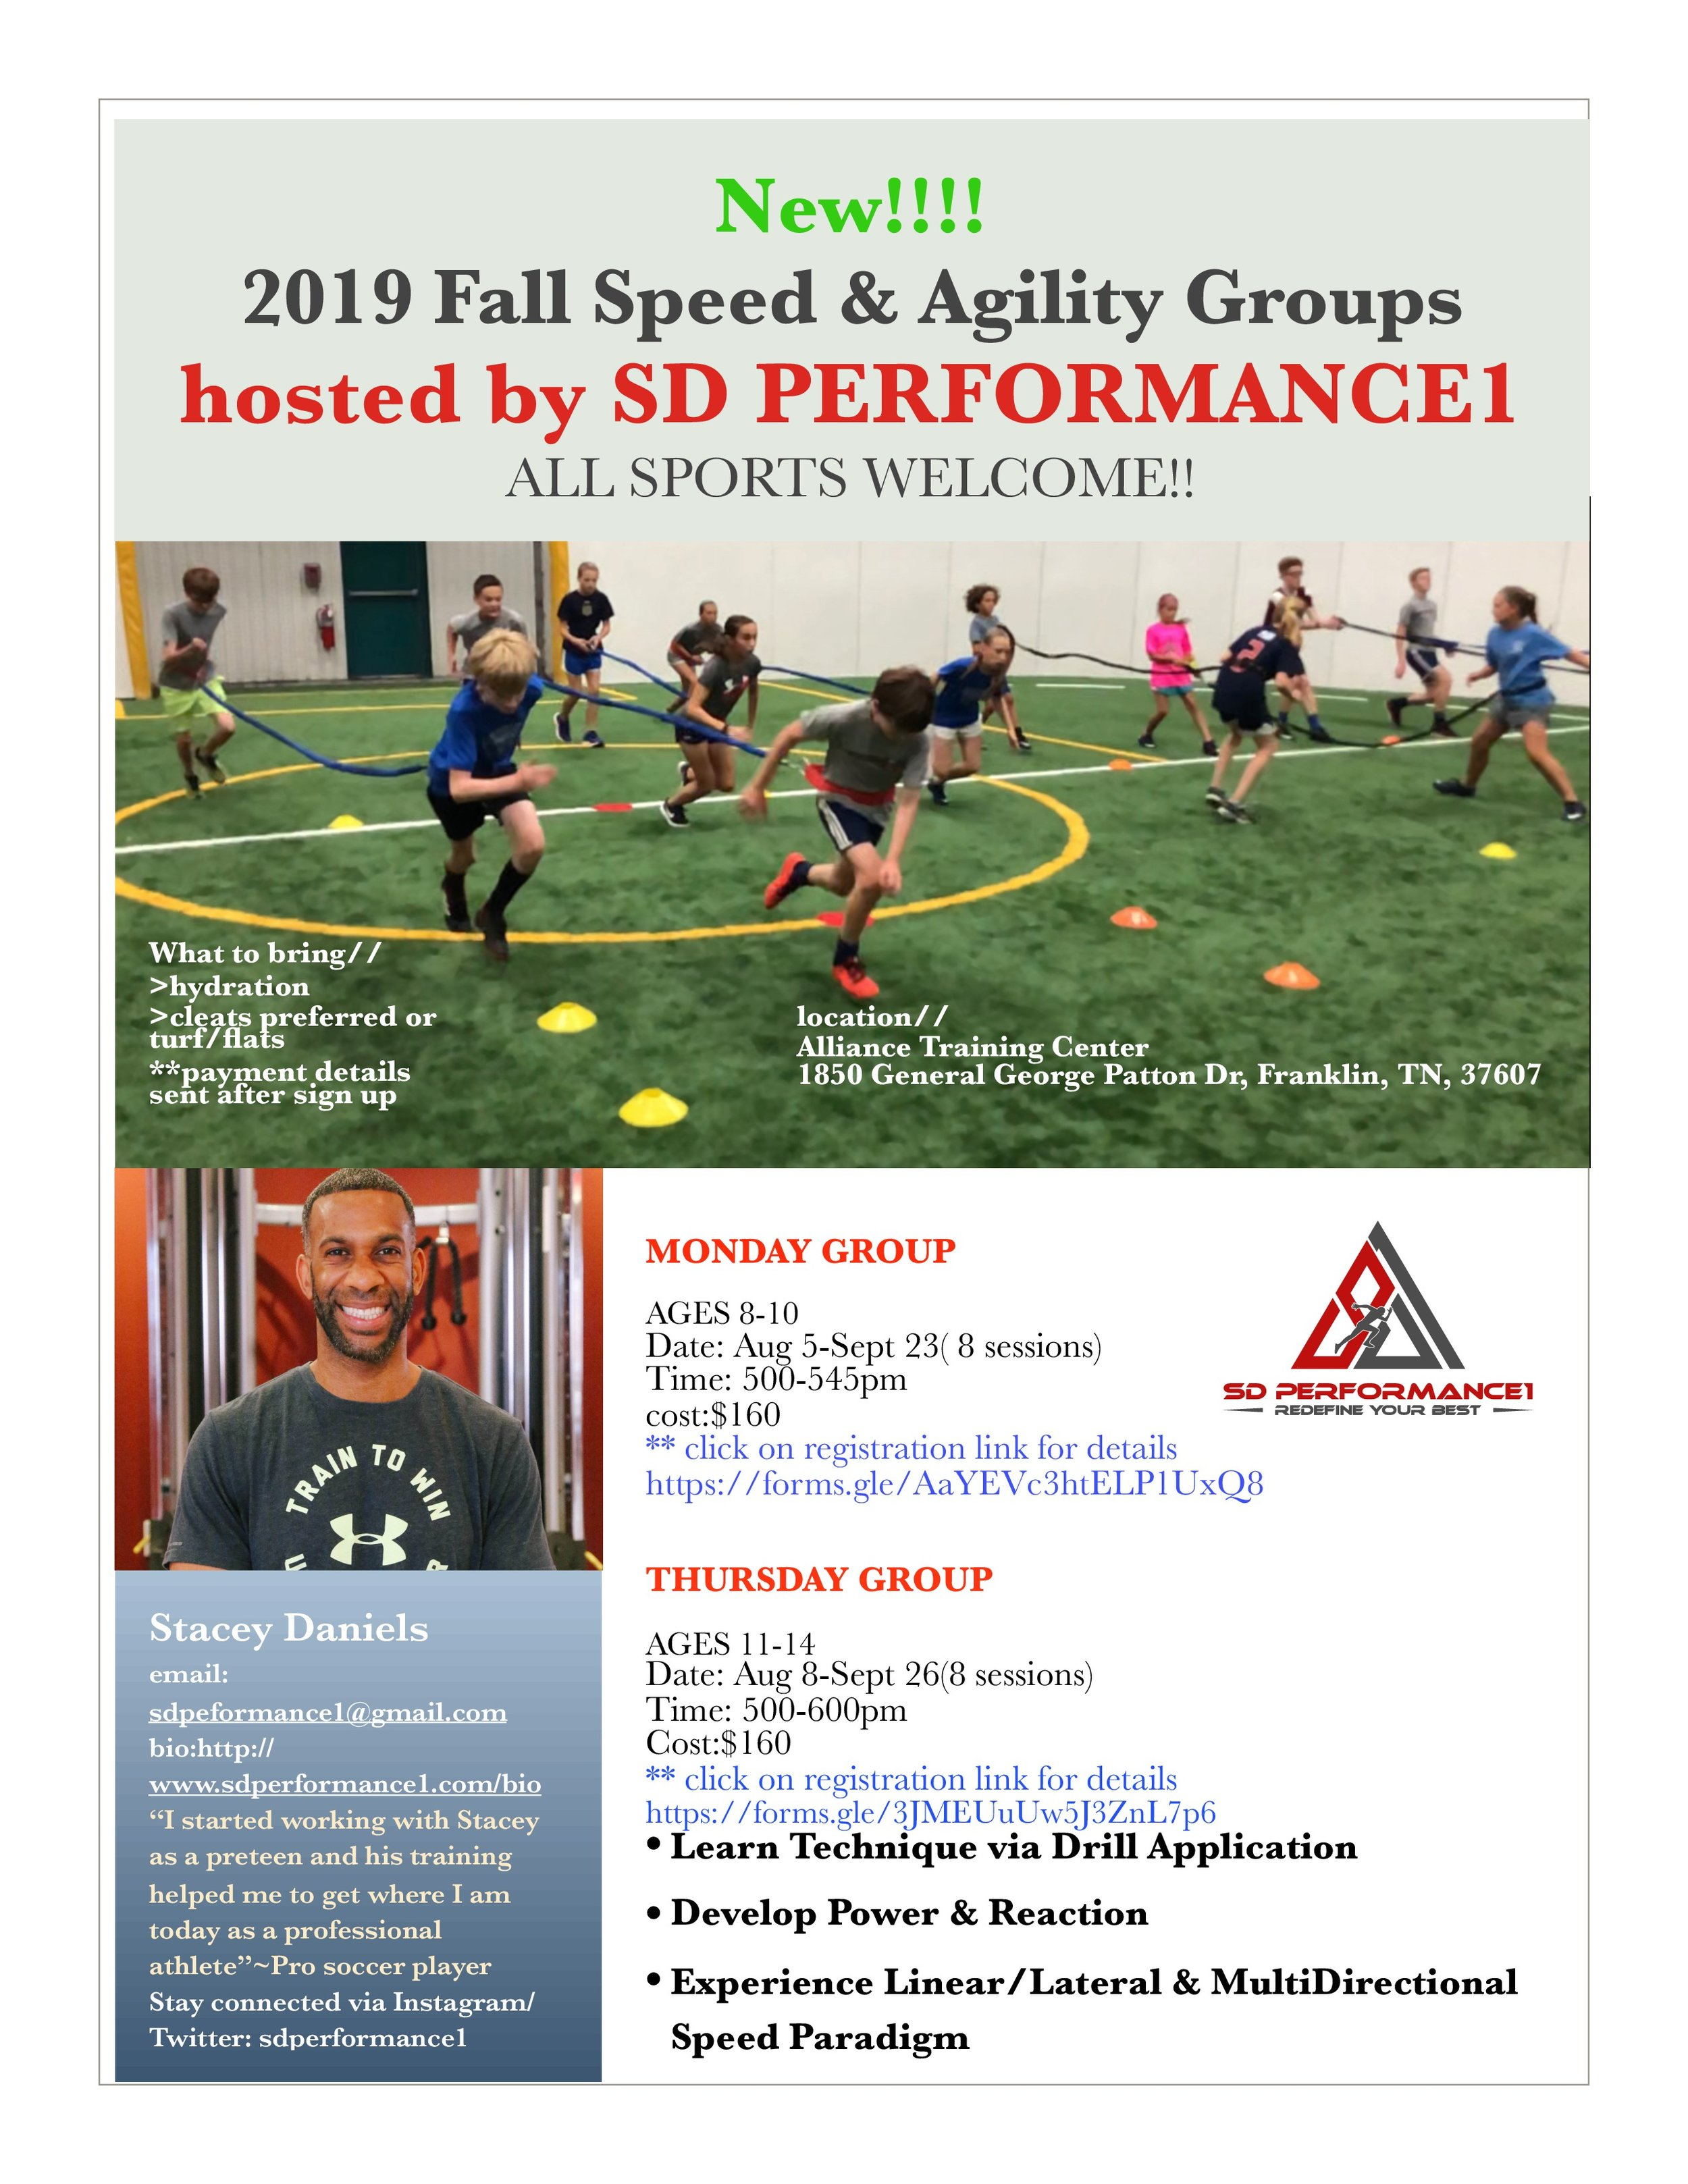 MONDAY GROUP> ages 8-10  Aug 5-Sept 23( 8 sessions in Franklin,TN) cost:$160 use link below to sign up and receive details  https://forms.gle/wSLugEncjwTNx1GT8   **8 are needed to initiate group     THURSDAY GROUP> ages 11-14  Aug 8-Sept 26( 8 sessions in Franklin,TN) cost:$160 use link below to sign up and receive details  https://forms.gle/DHzXQCetZJWXSHvt8  **8 are needed to initiate group